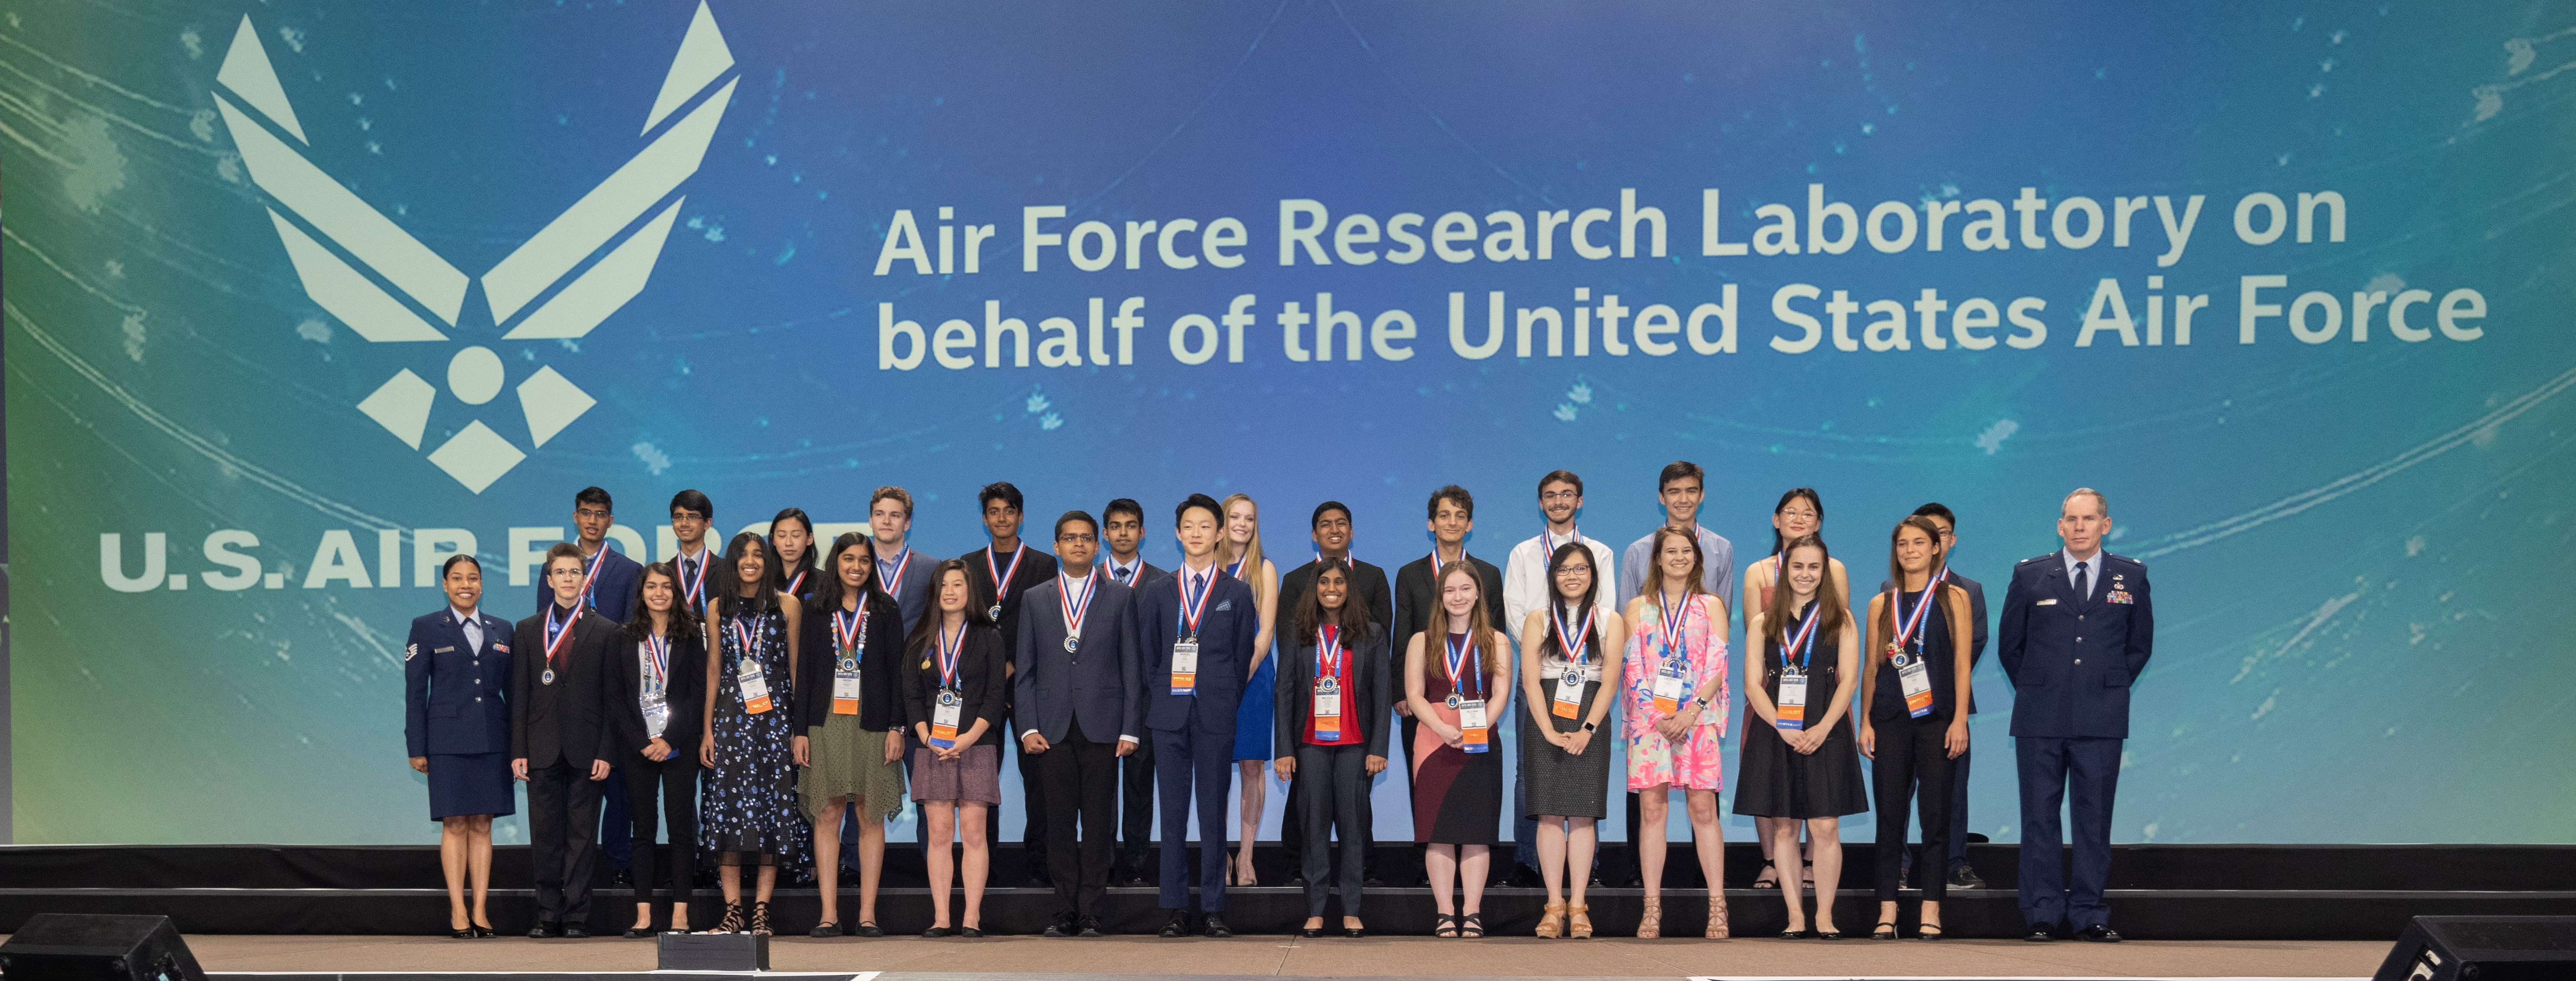 Intel ISEF 2019 USAF Special Award Winners